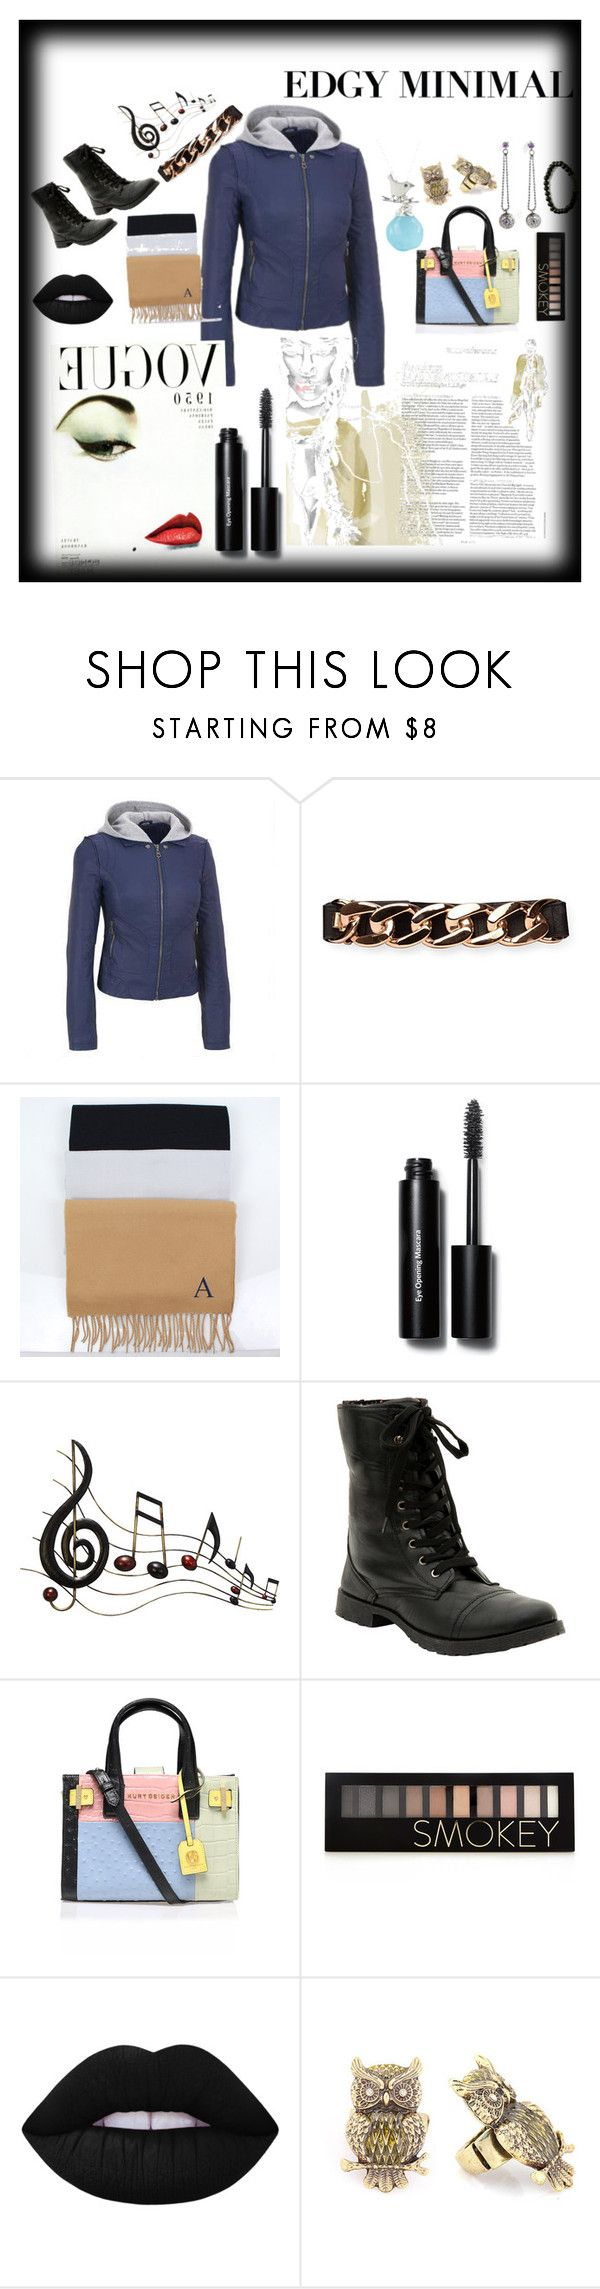 """The edgy minimal black rivet loves a triste with vogue boots mascara."" by fellowwanderers ❤ liked on Polyvore featuring Bobbi Brown Cosmetics, Benzara, Kurt Geiger, Forever 21, Lime Crime, Becky Dockree Jewellery, modern, women's clothing, women and female"